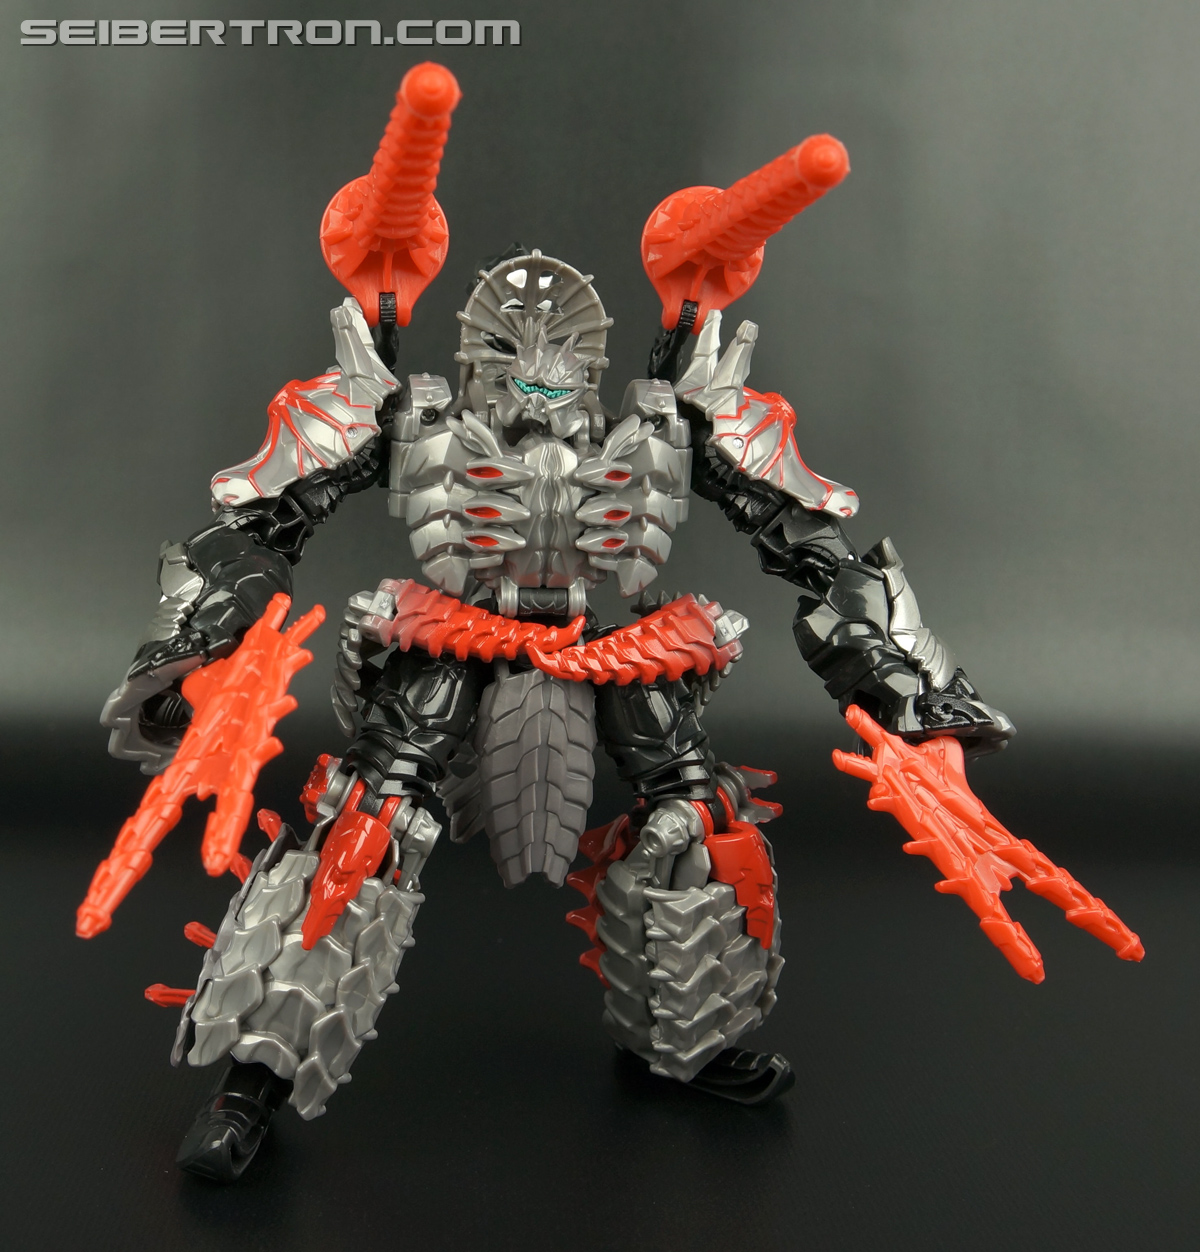 Transformers Age of Extinction: Generations Slog (Image #166 of 208)